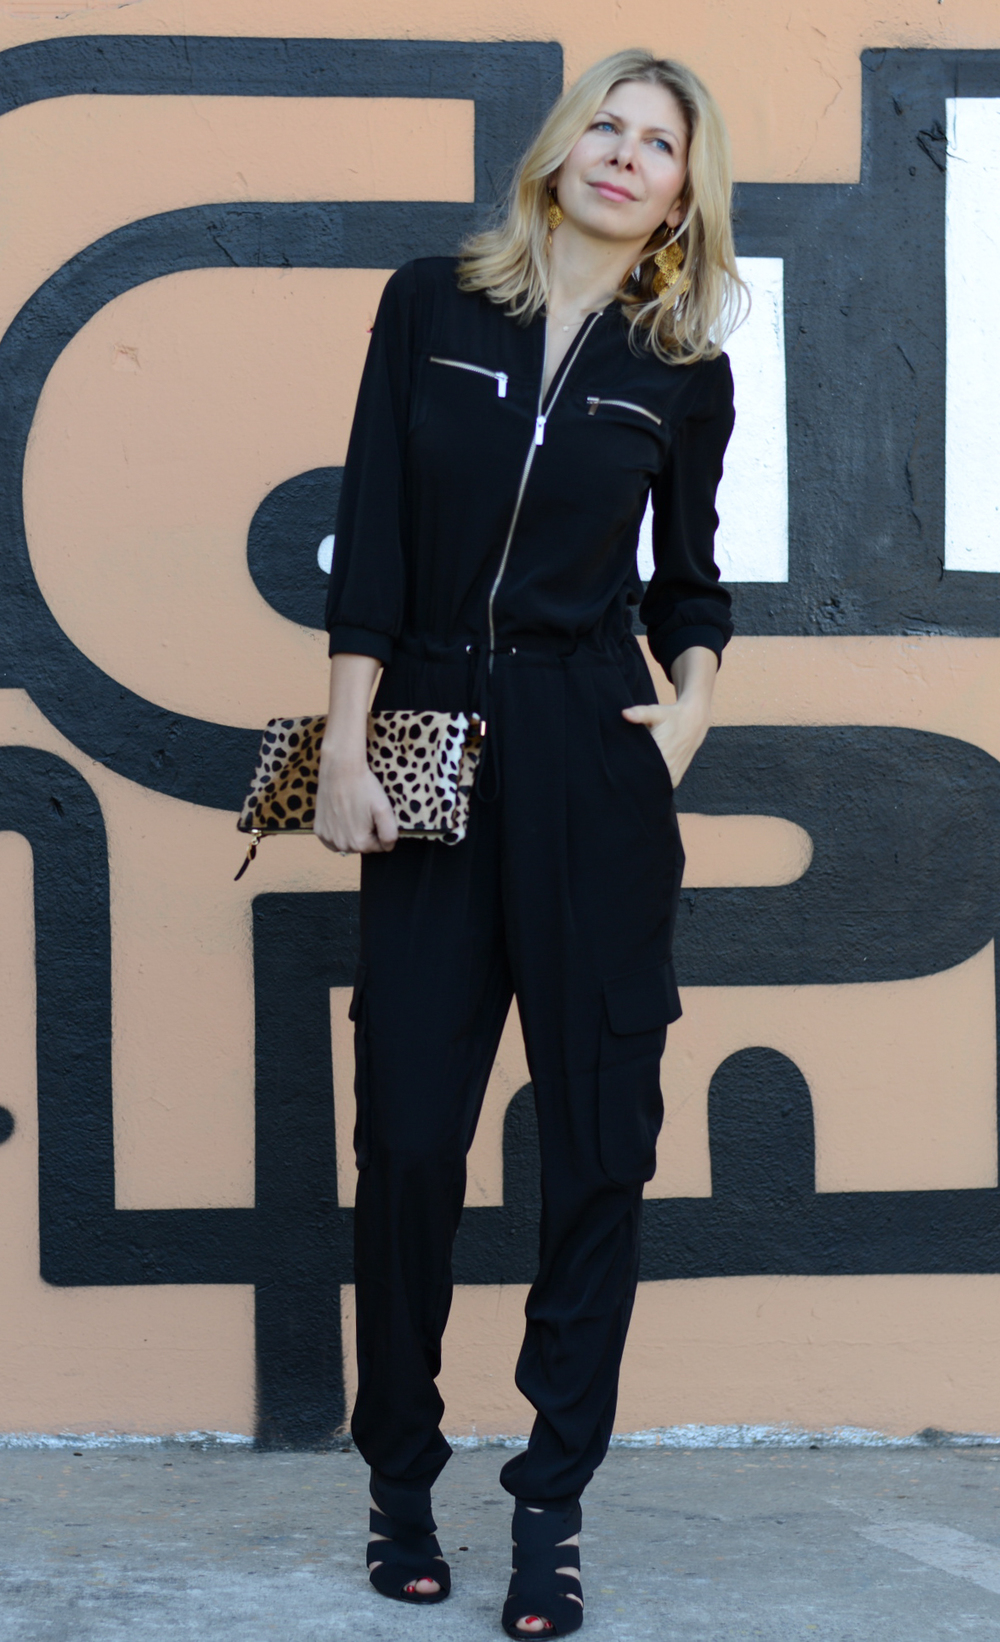 Karen Millen Jumpsuit, Clare Vivier Clutch, Outfit of the day